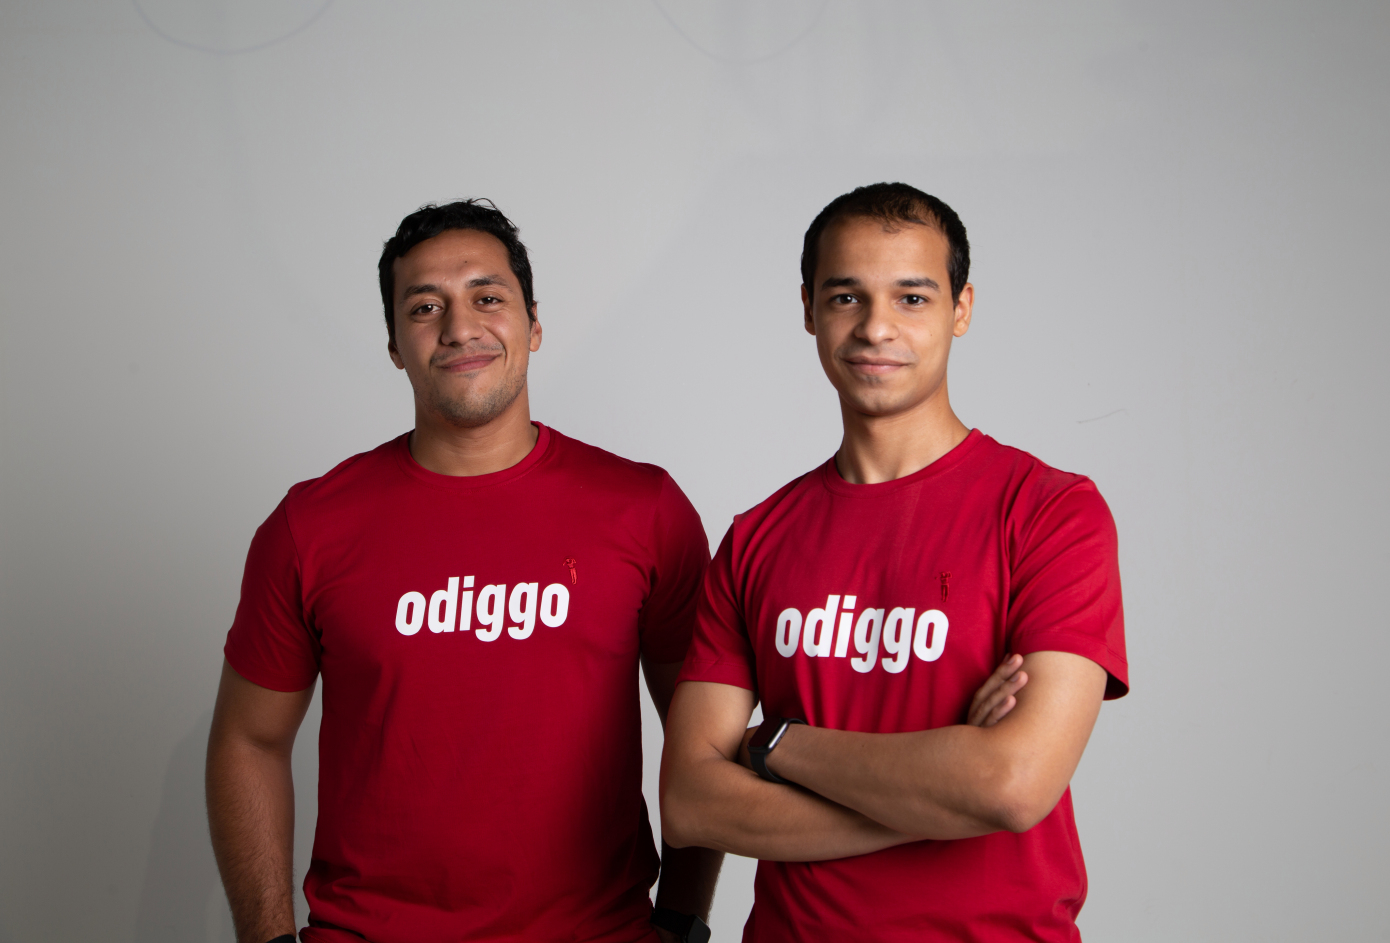 Egyptian auto-tech Startup, Odiggo raise $2.2m seed round from 500 Startups, Y Combinator and PlugAndPlay